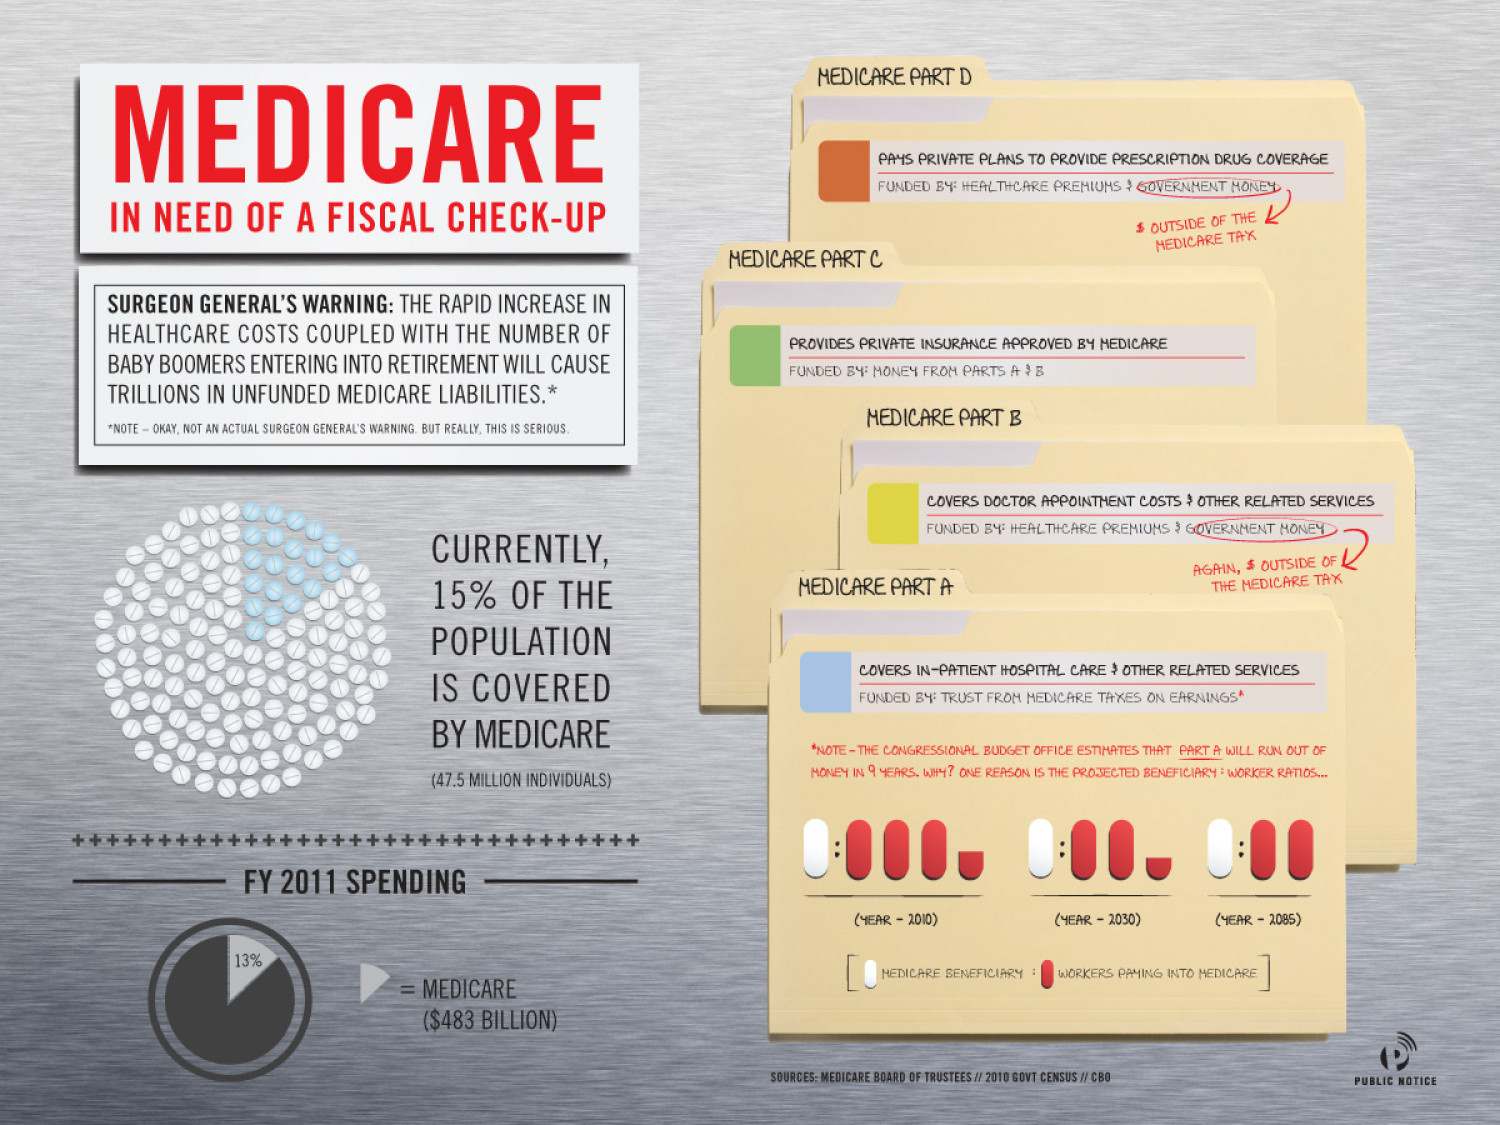 Medicare: In Need of a Fiscal Check-Up Infographic